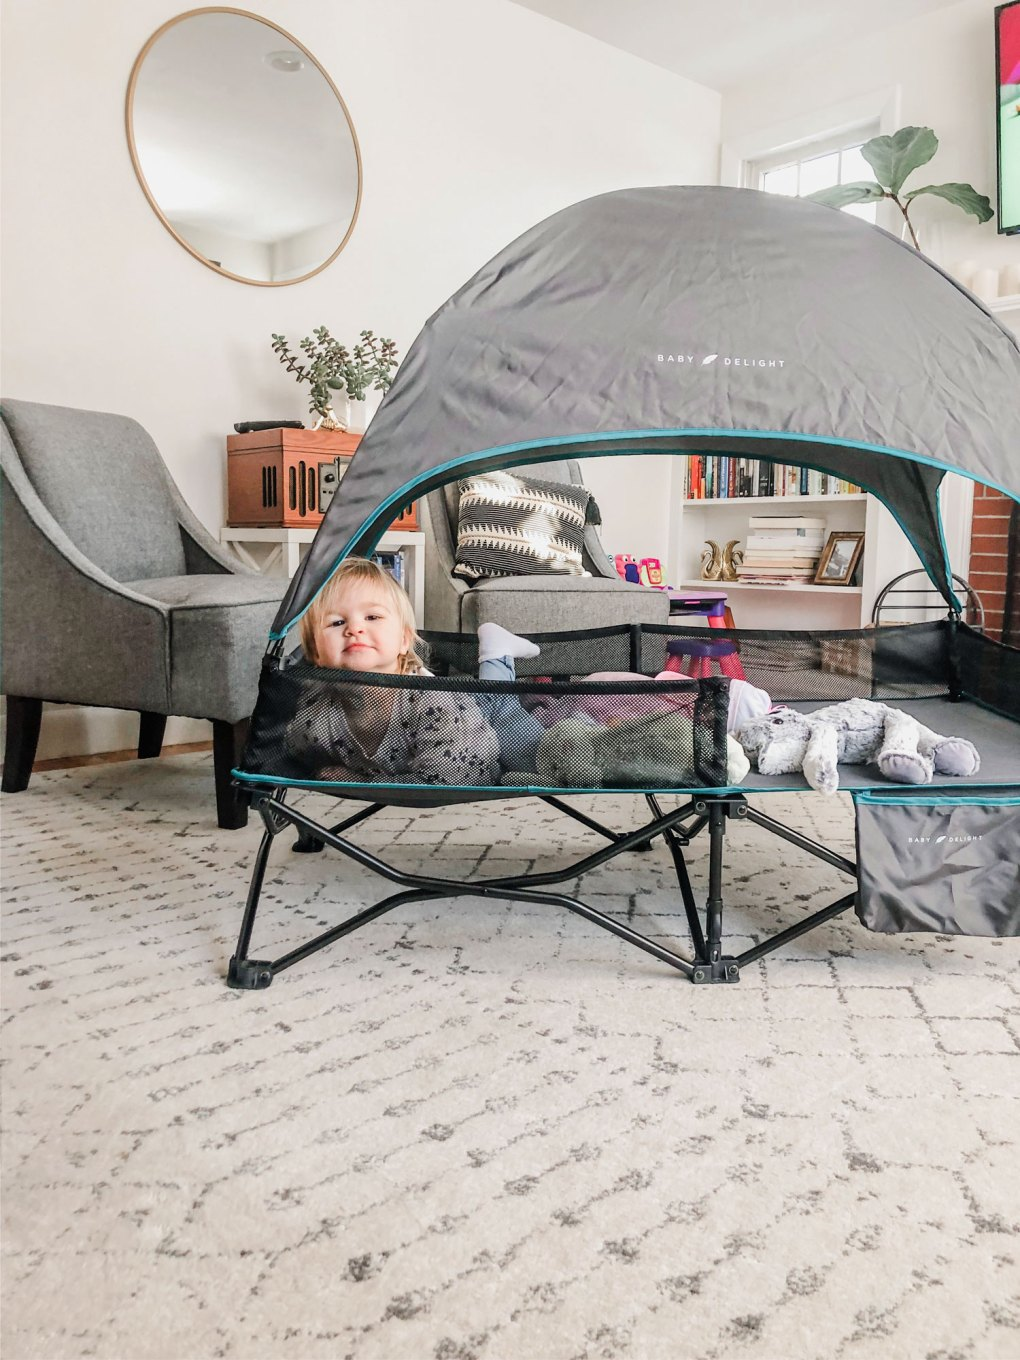 Go With Me™ Bungalow Deluxe Portable Travel Cot